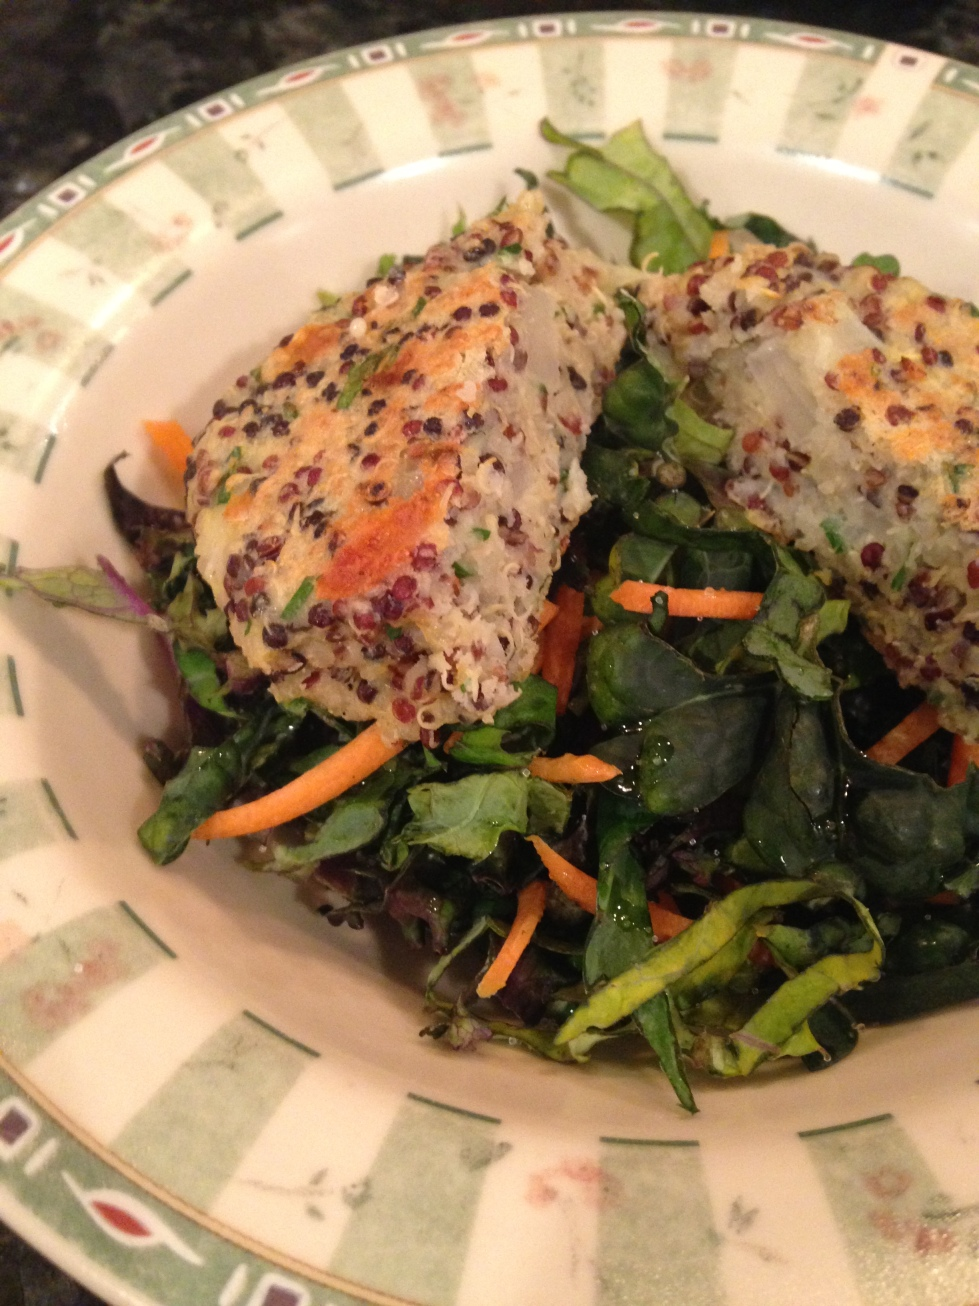 Quinoa Burger with Kale Salad